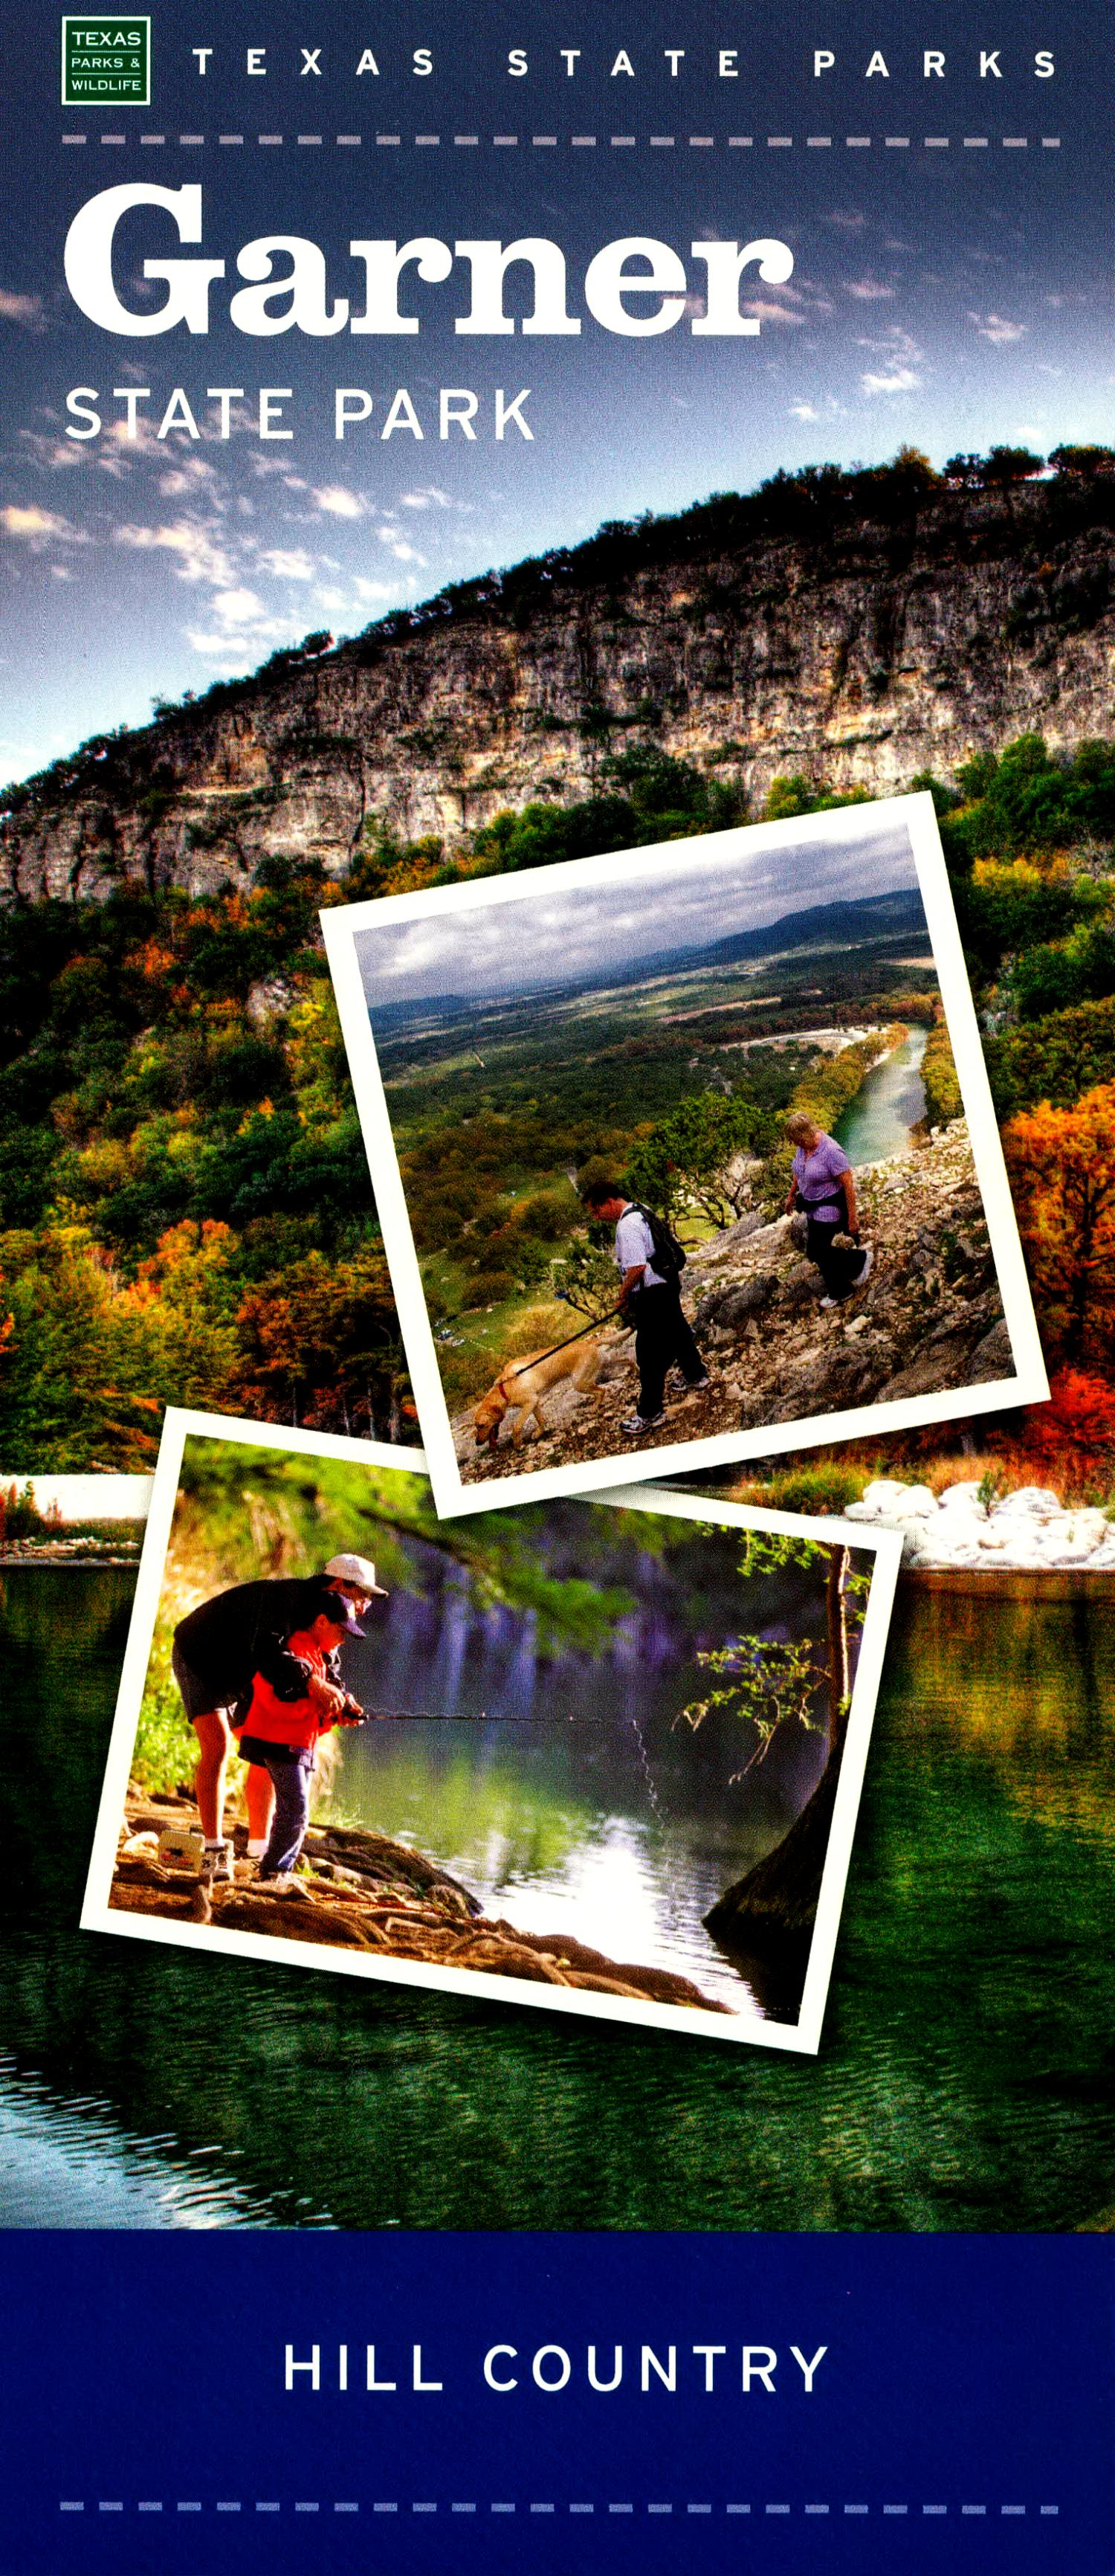 Garner State Park - The Portal to Texas History